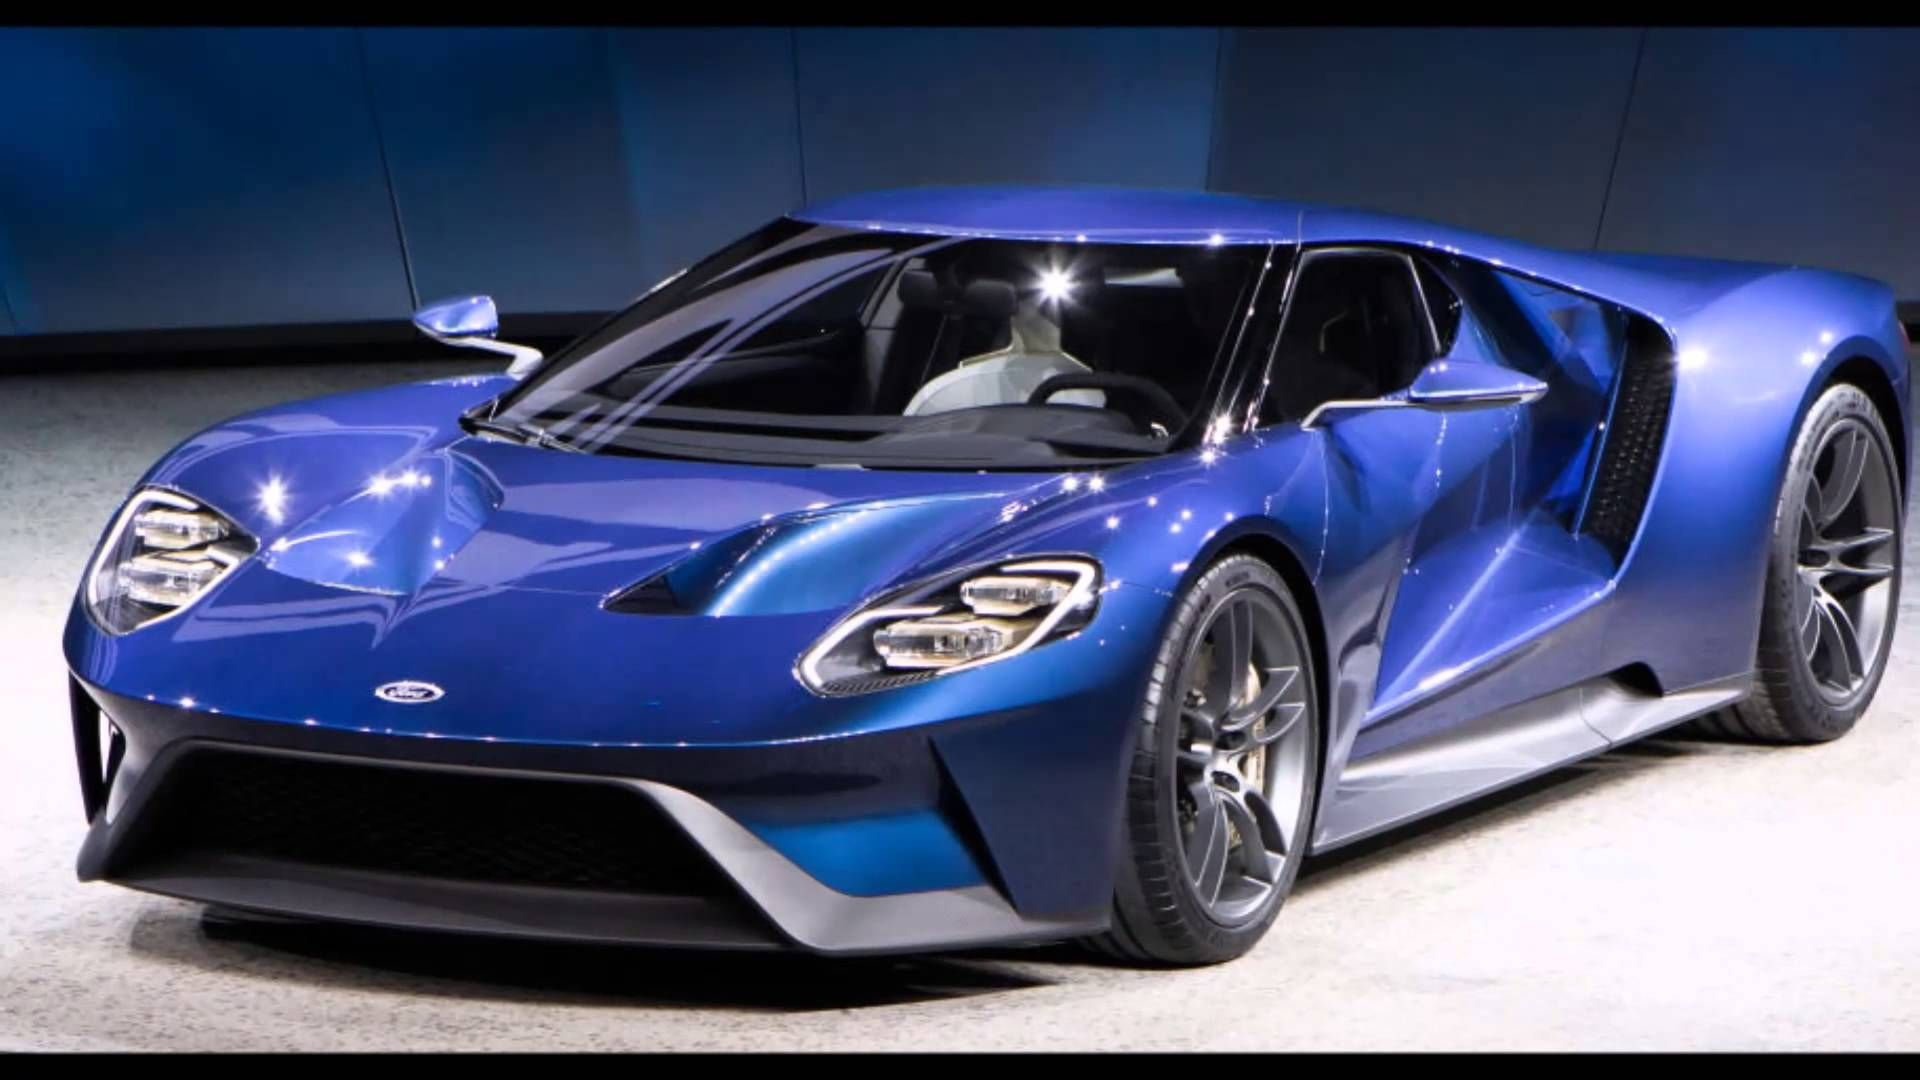 2017 Ford Gt Concept Redesign And Price Http Newautocarhq Com 2017 Ford Gt Concept Redesign And Price Ford Gt Ford Gt 2017 Supercar Prices